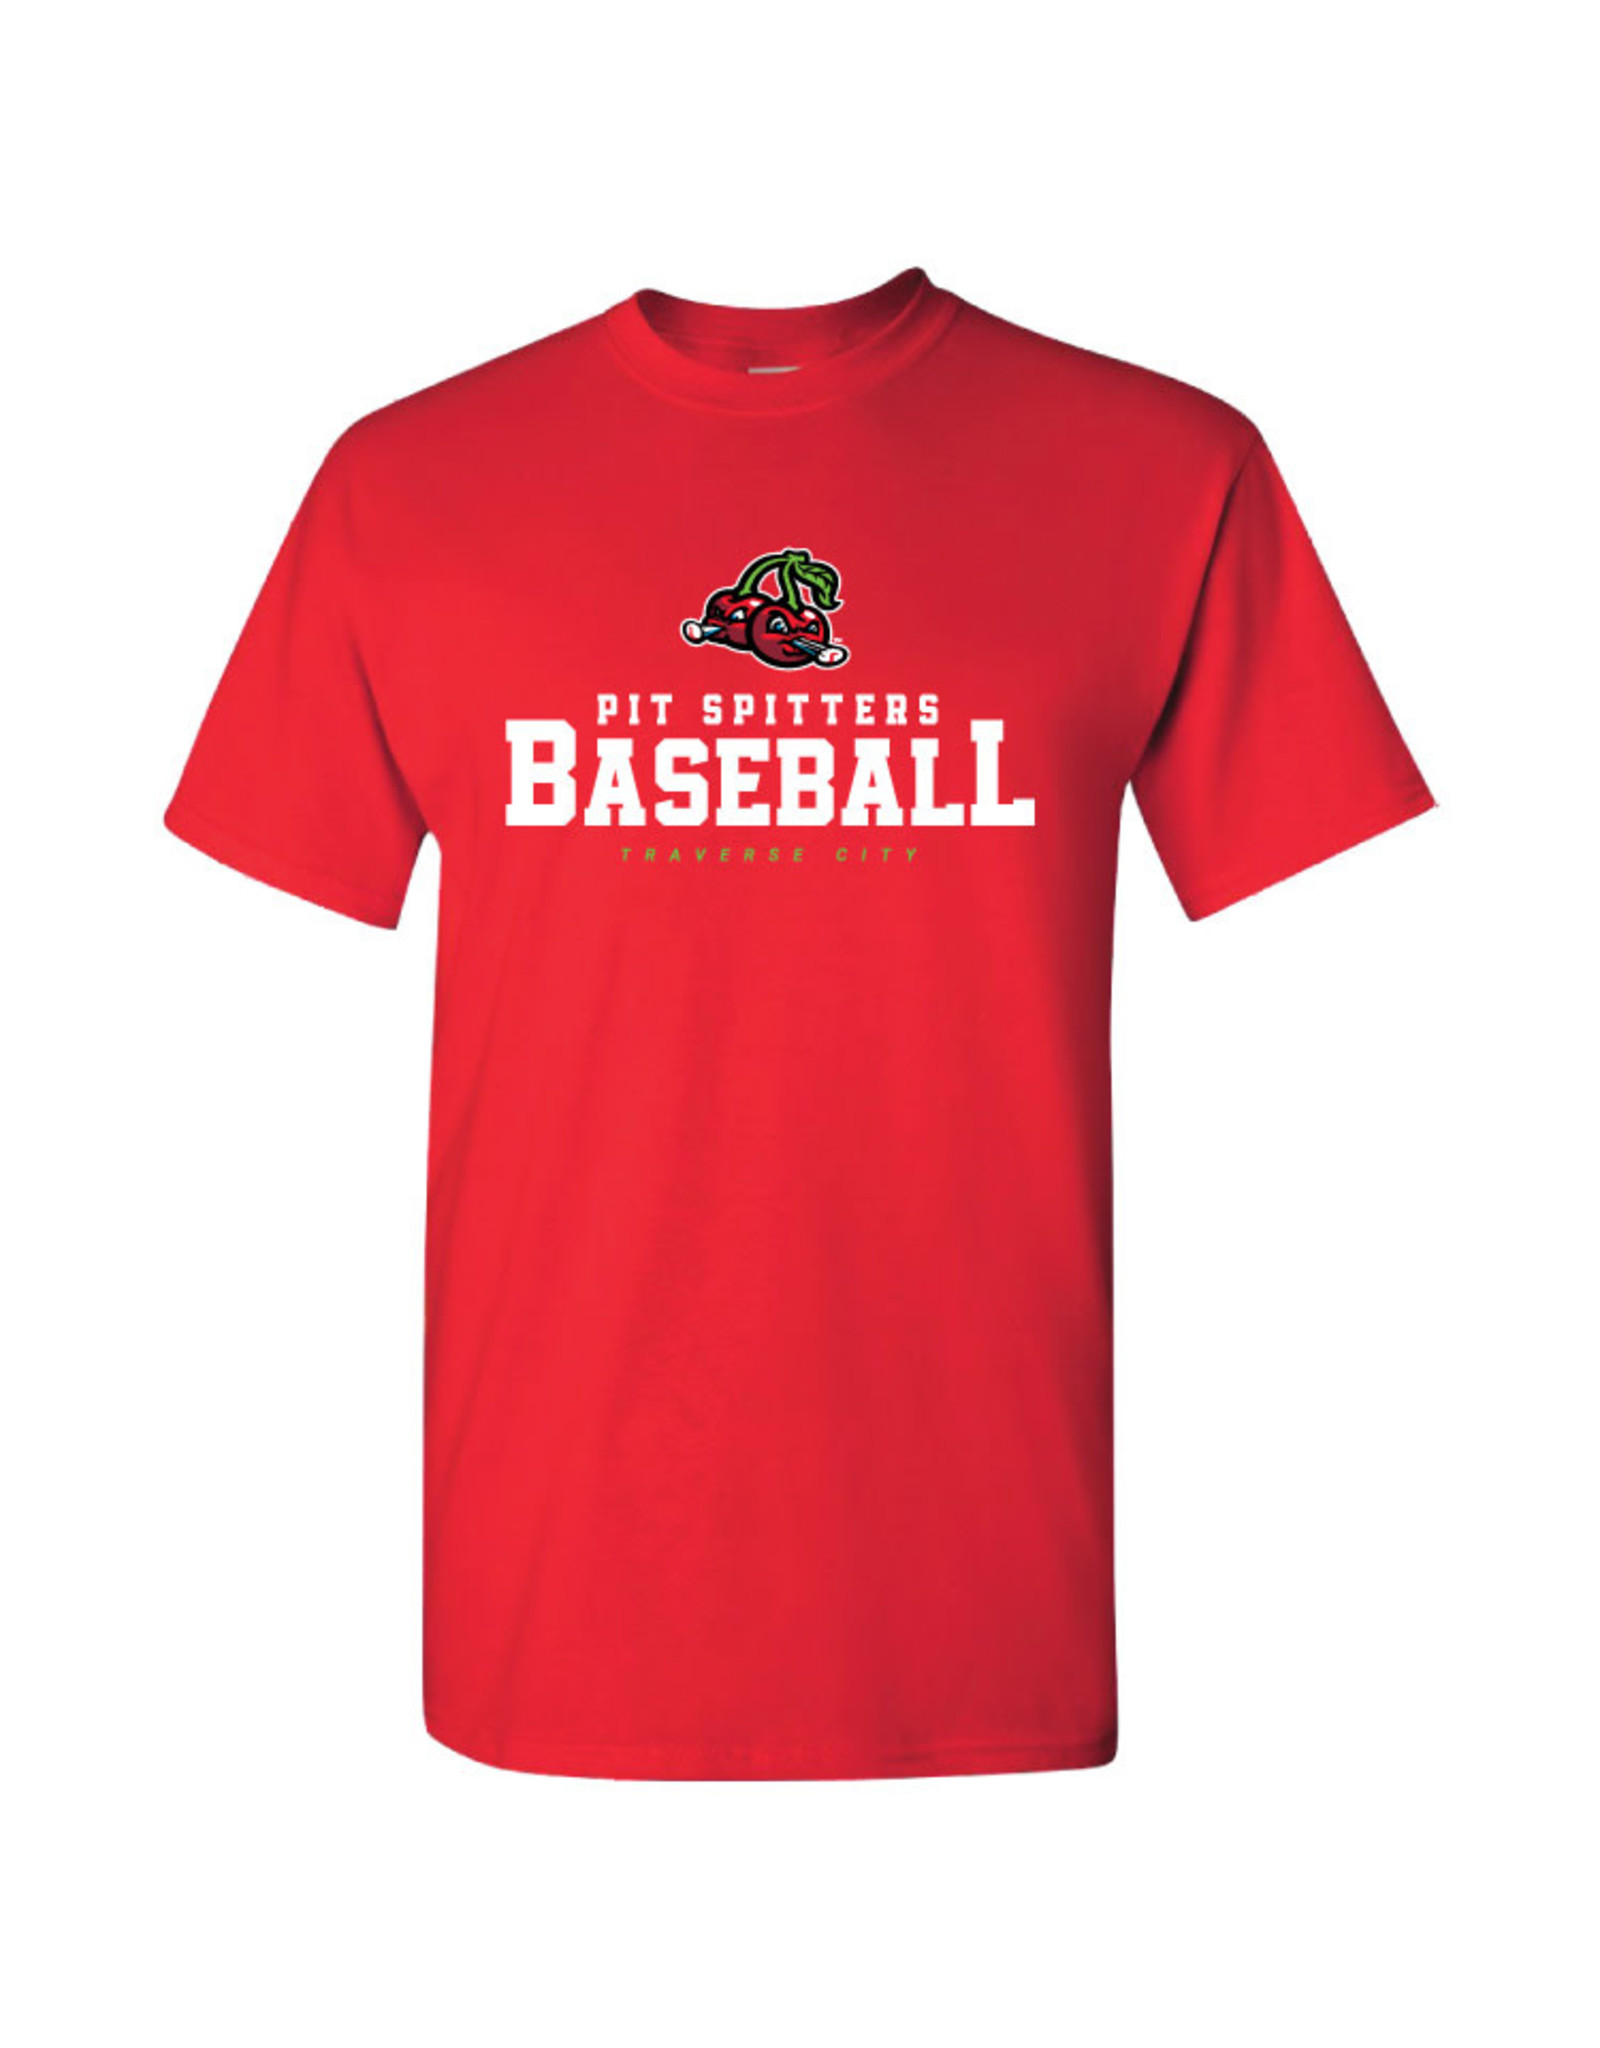 2050 Cherries/Stacked Text Red Tee